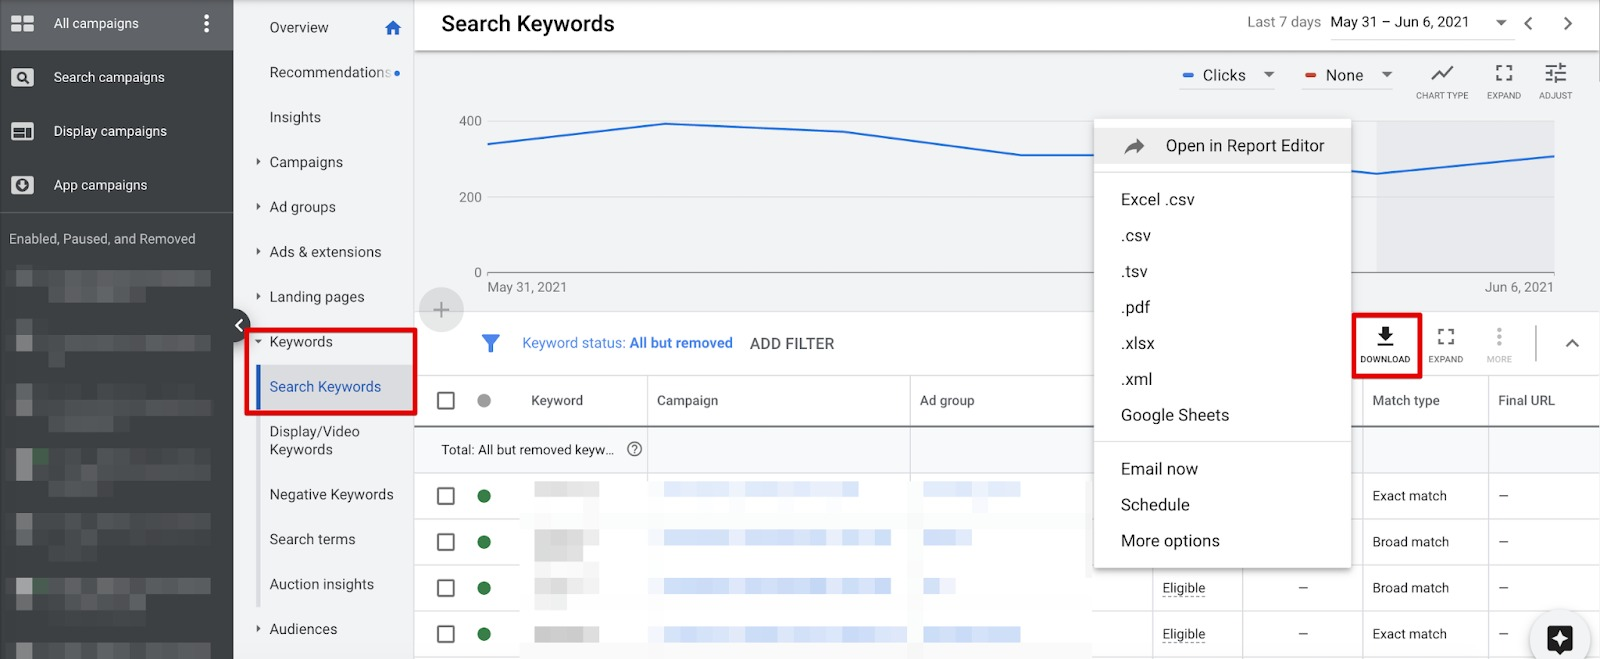 How to Import Your Google Ads Campaign to Semrush image 1